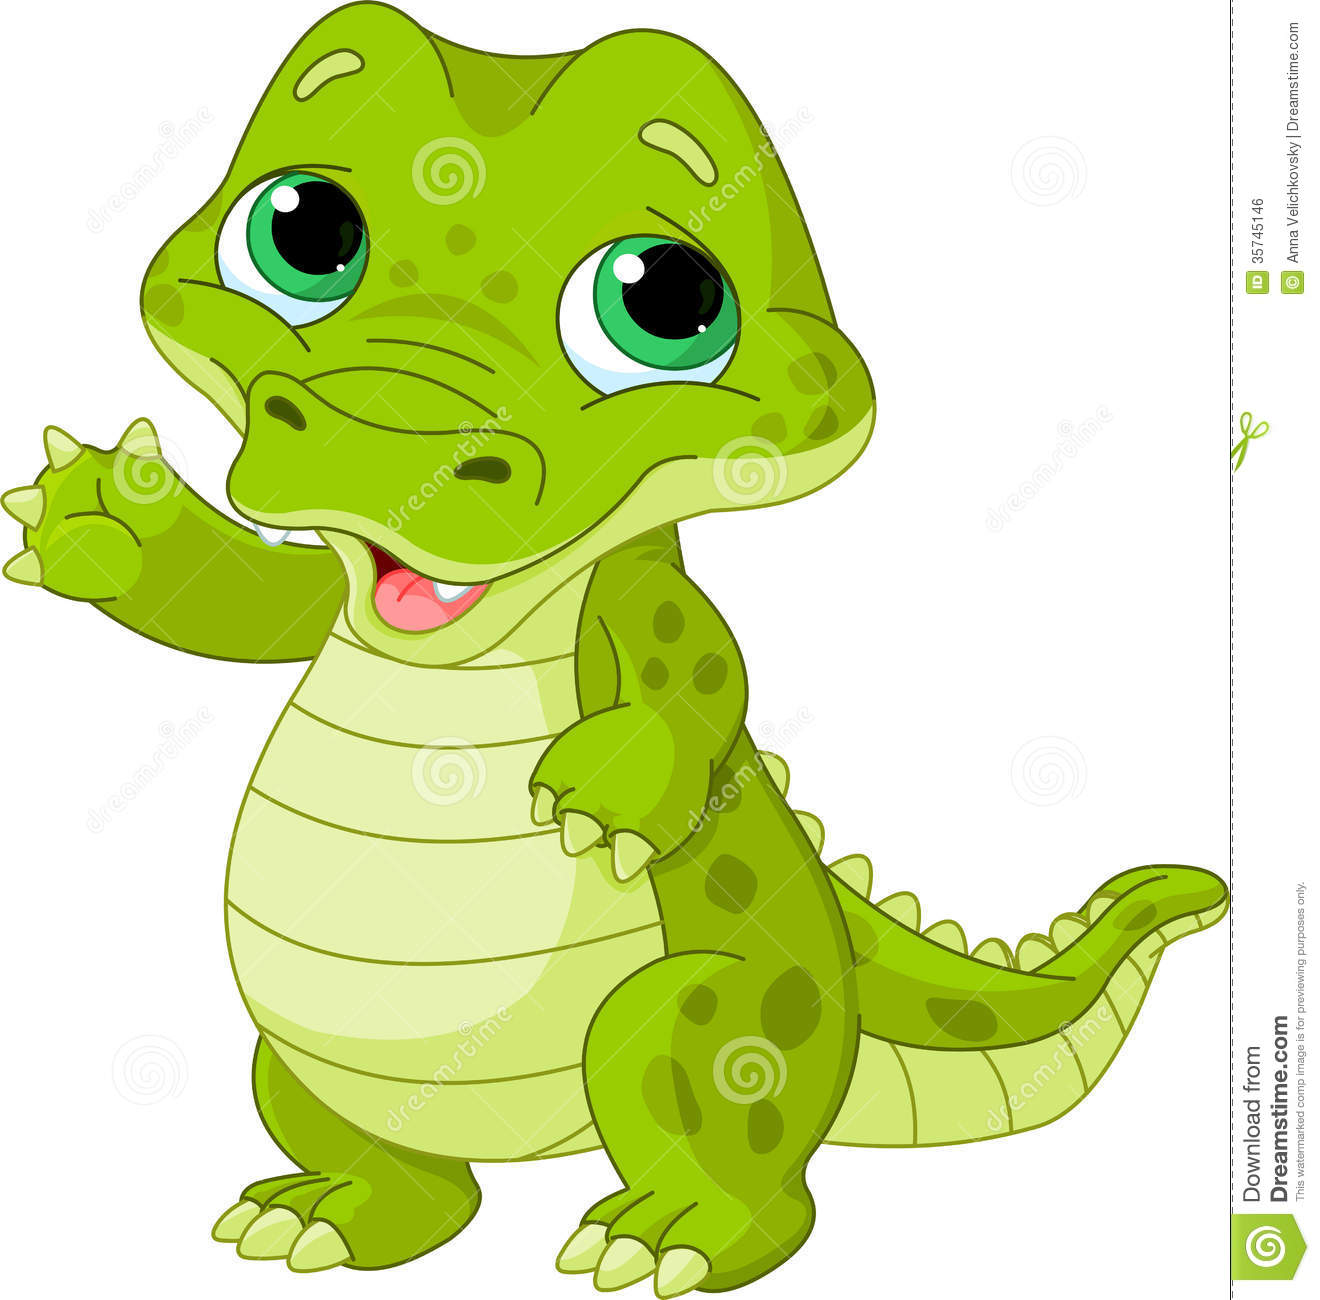 Alligator clipart cute Pages google  com/search?q=reptiles https://www